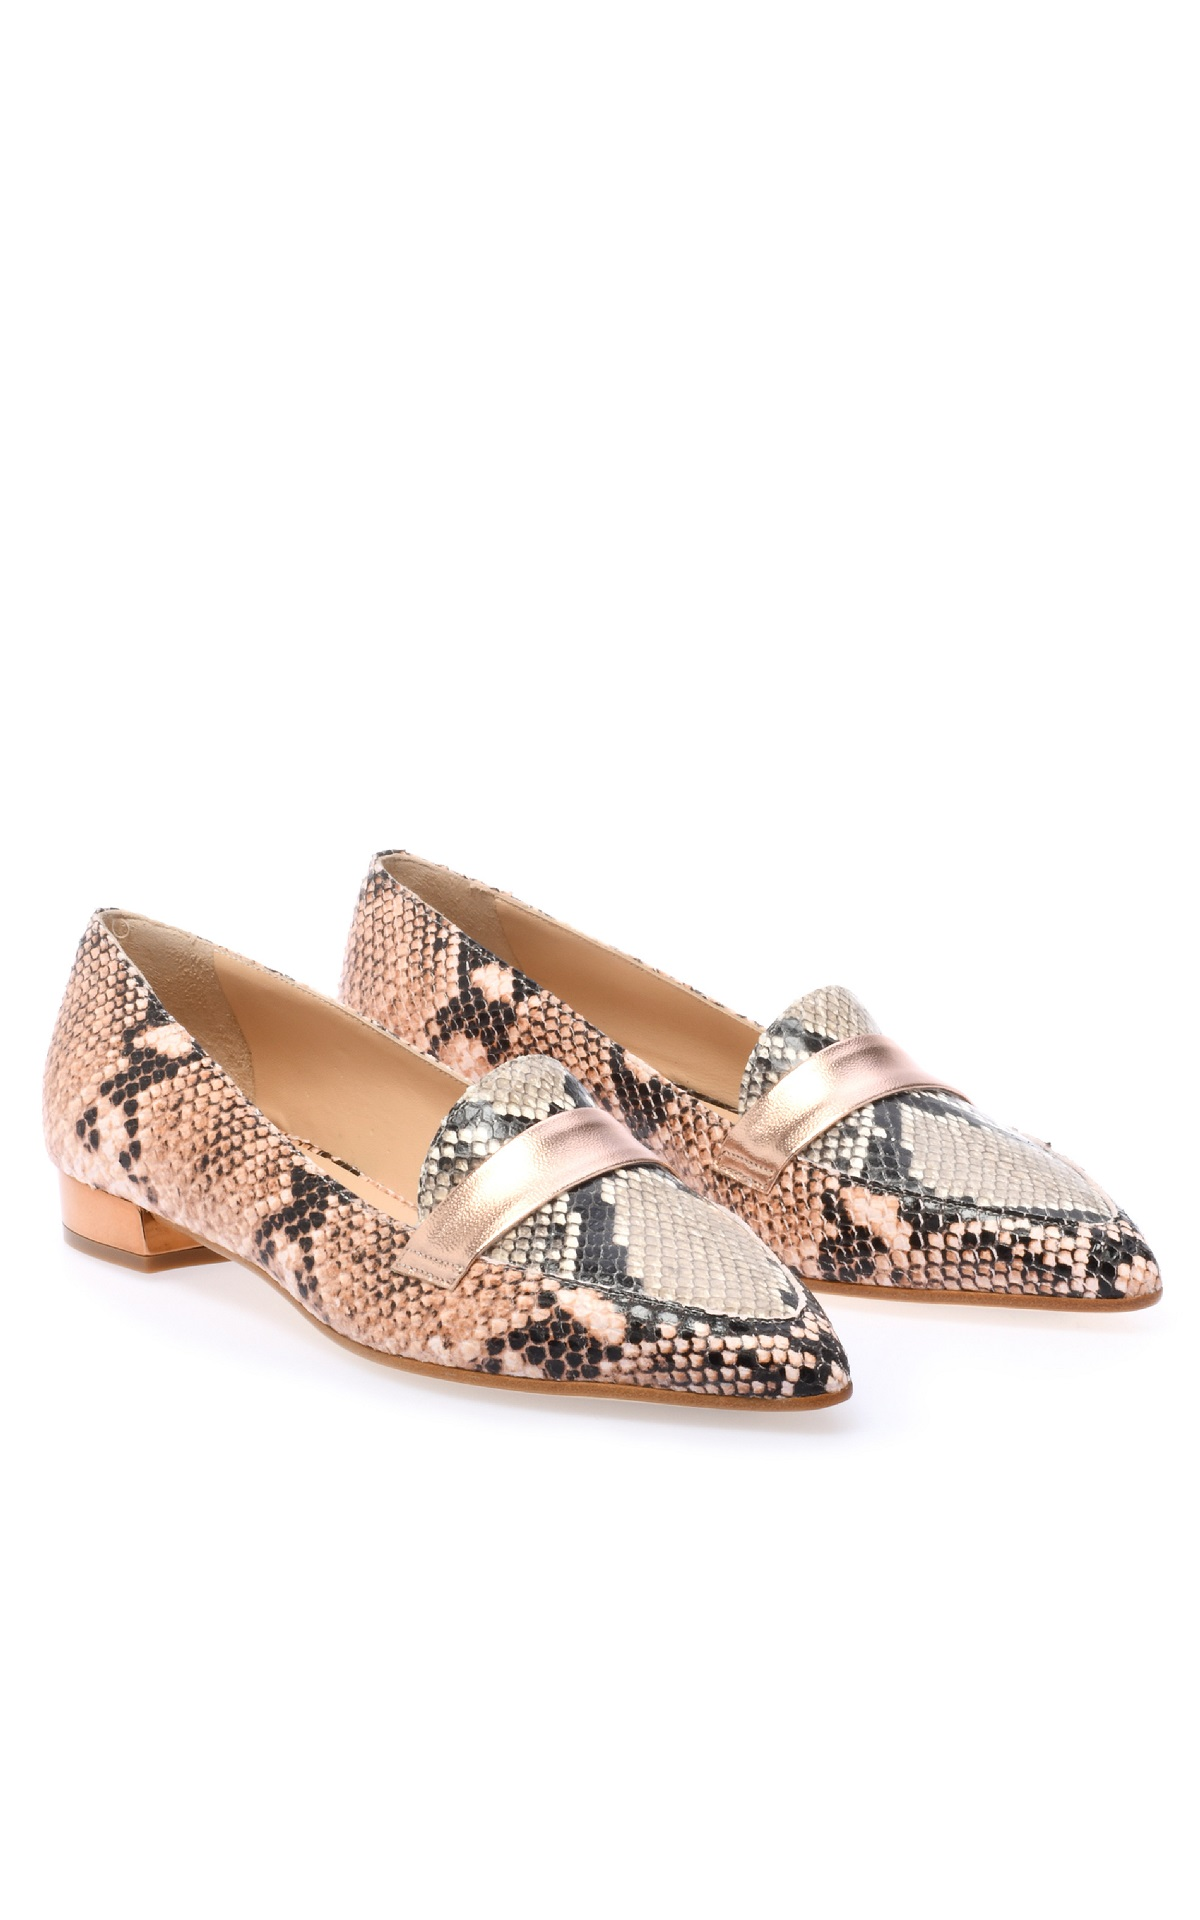 Snake print leather loafers for woman Baldinini